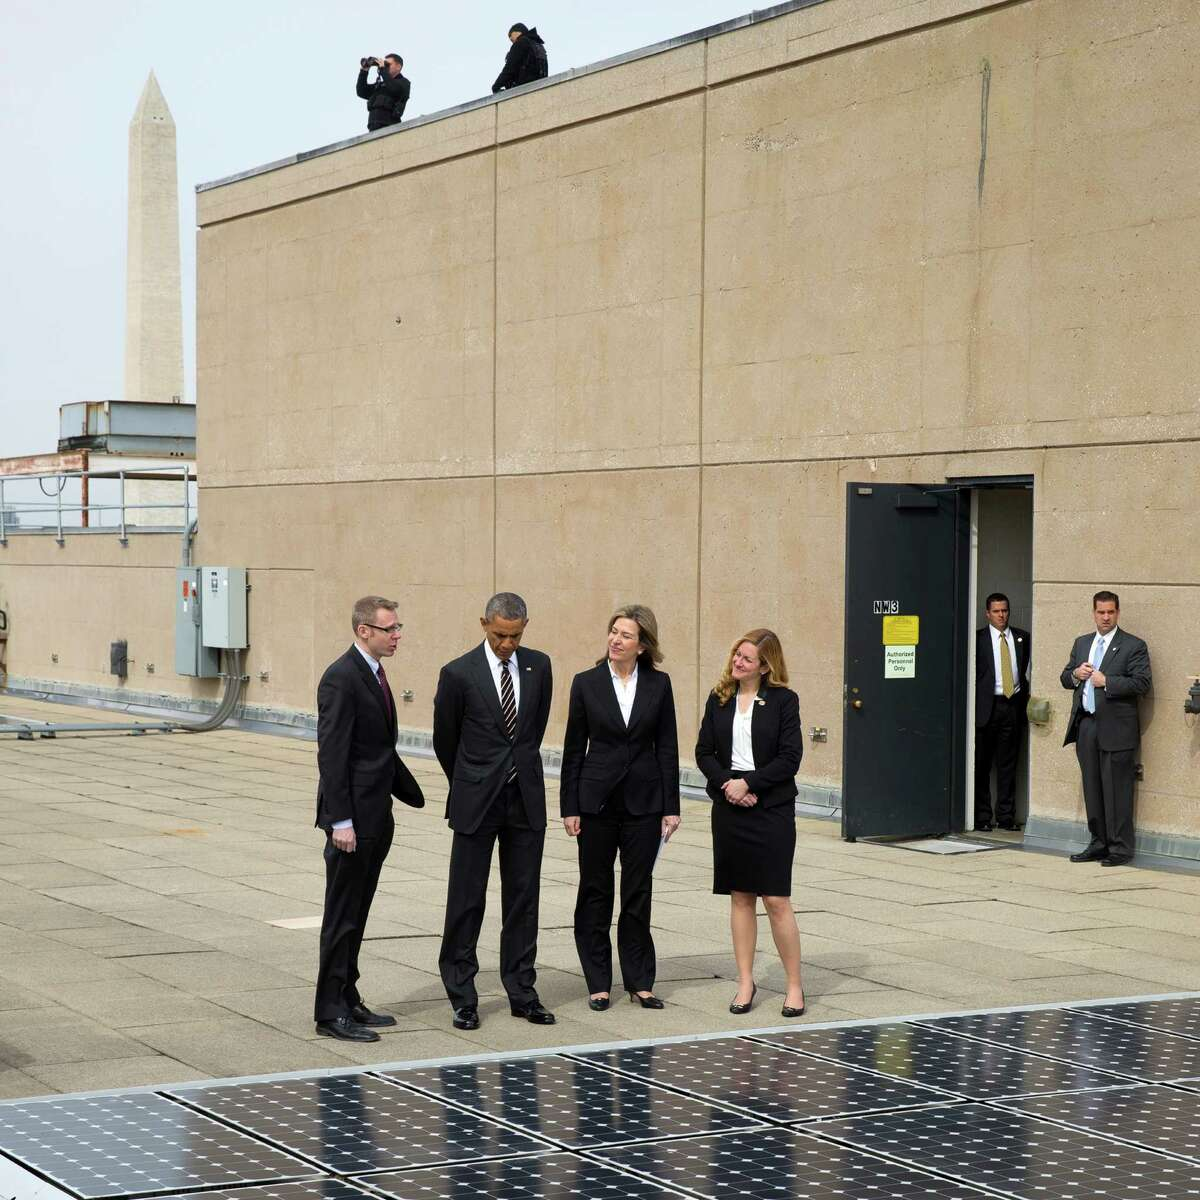 President Obama views solar panels on the roof at the Department of Energy headquarters in Washington on Thursday. Obama signed an executive order cutting the federal government's greenhouse gas emissions. From left: Eric Haukdal, an energy manager at the DOE, Obama, Deputy Energy Secretary Elizabeth Sherwood-Randall and Kate Brandt, the federal environmental executive.